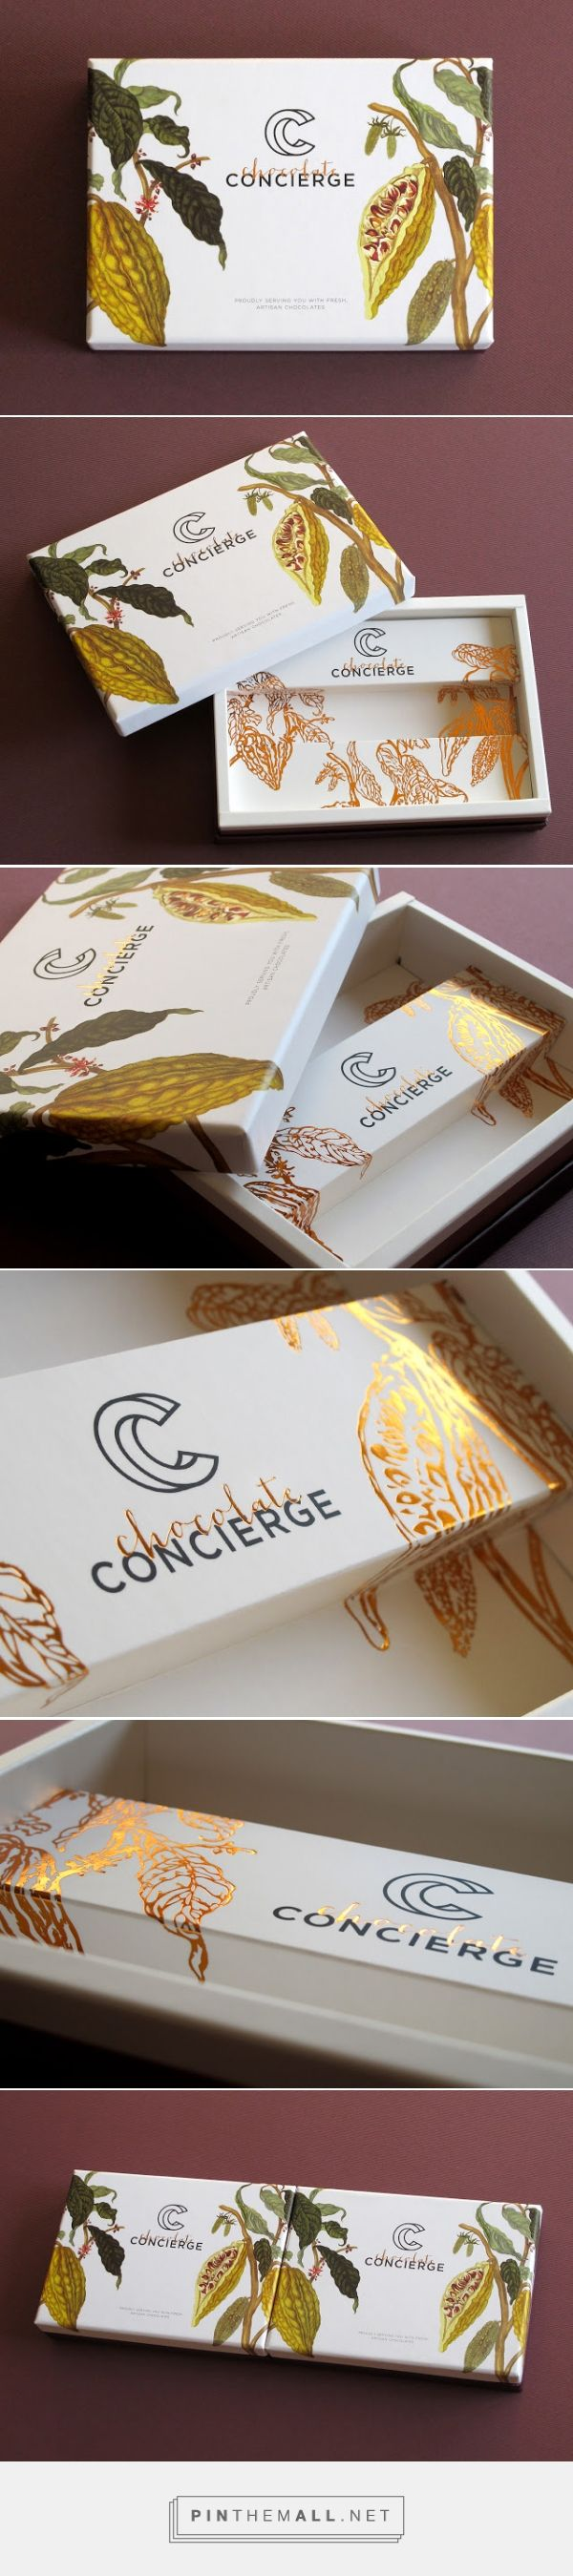 Chocolate Concierge Designed by Anagraphic